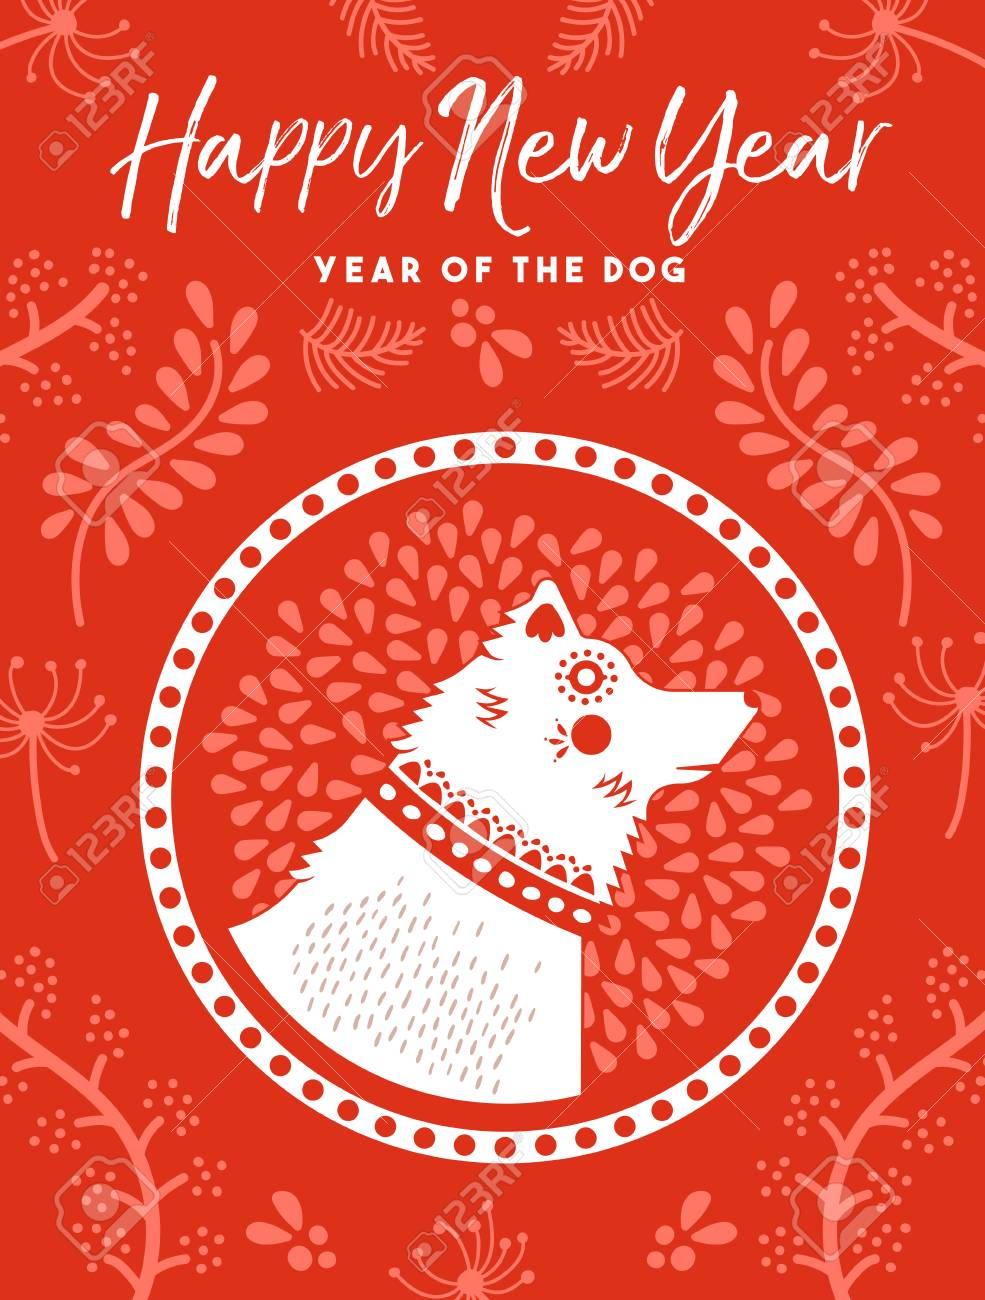 2018 happy chinese new year of the dog greeting card design with 2018 happy chinese new year of the dog greeting card design with traditional red illustration and kristyandbryce Choice Image